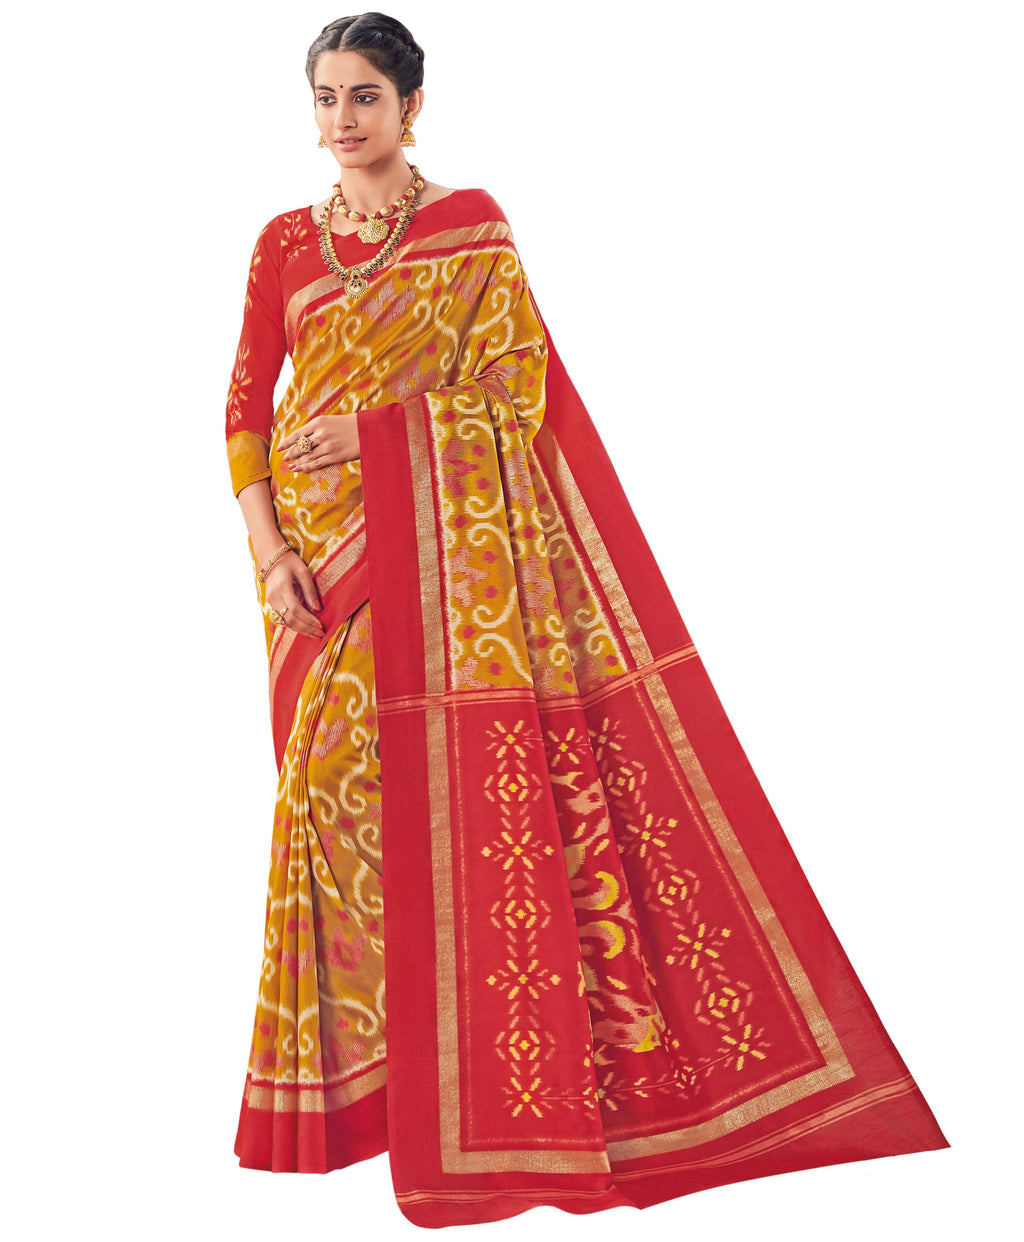 Mustard Yellow & Red Color Bhagalpuri Festive & Party Wear Sarees NYF-8666